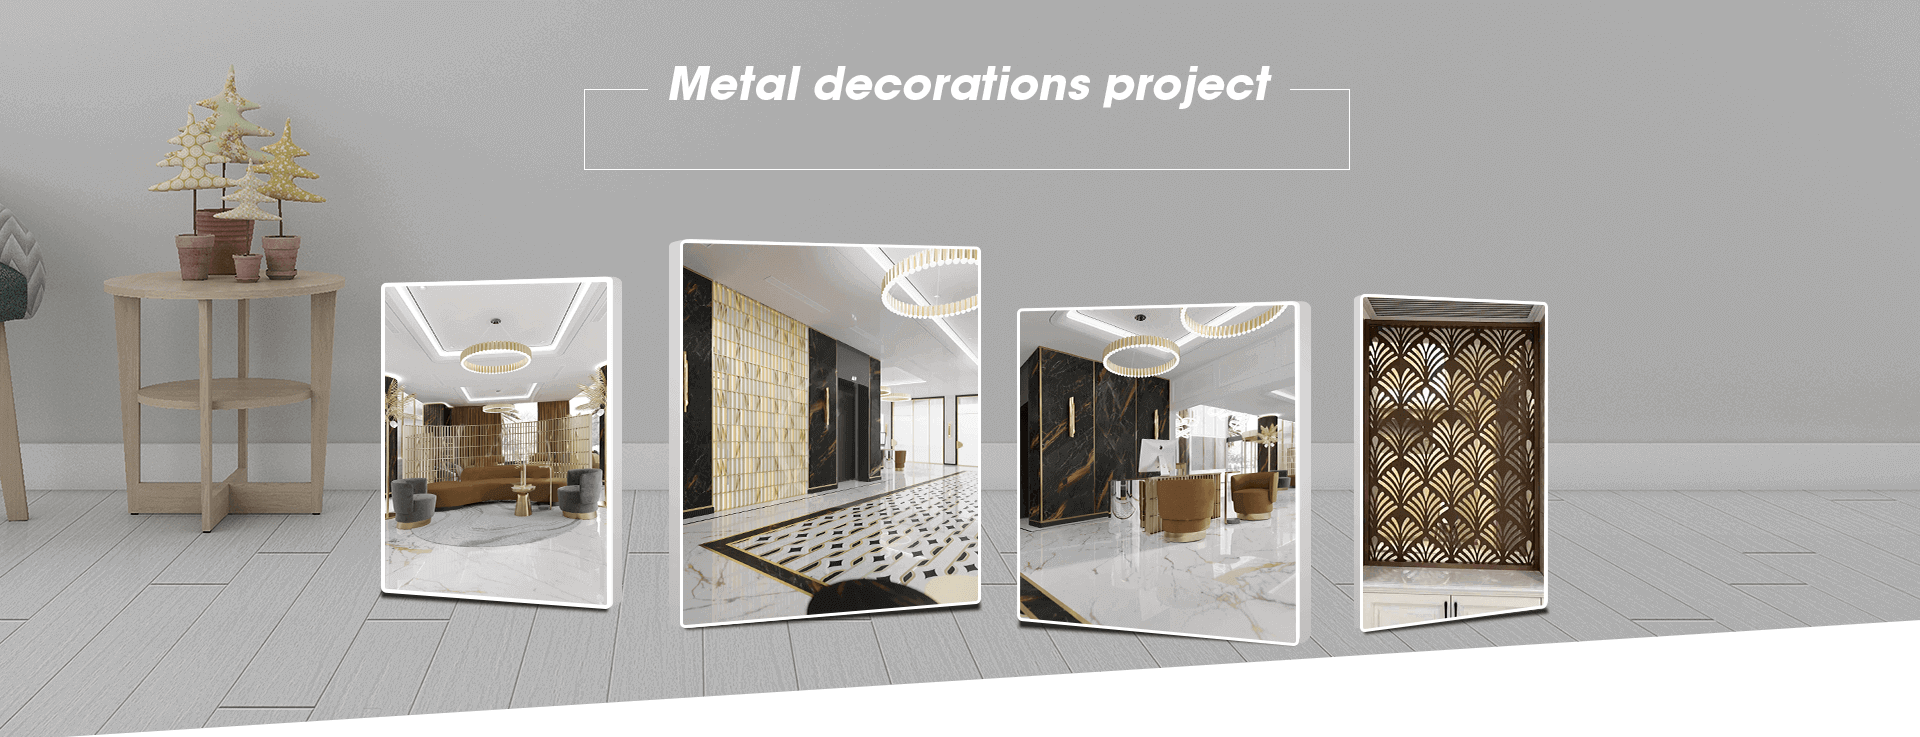 Metal Decorations Project